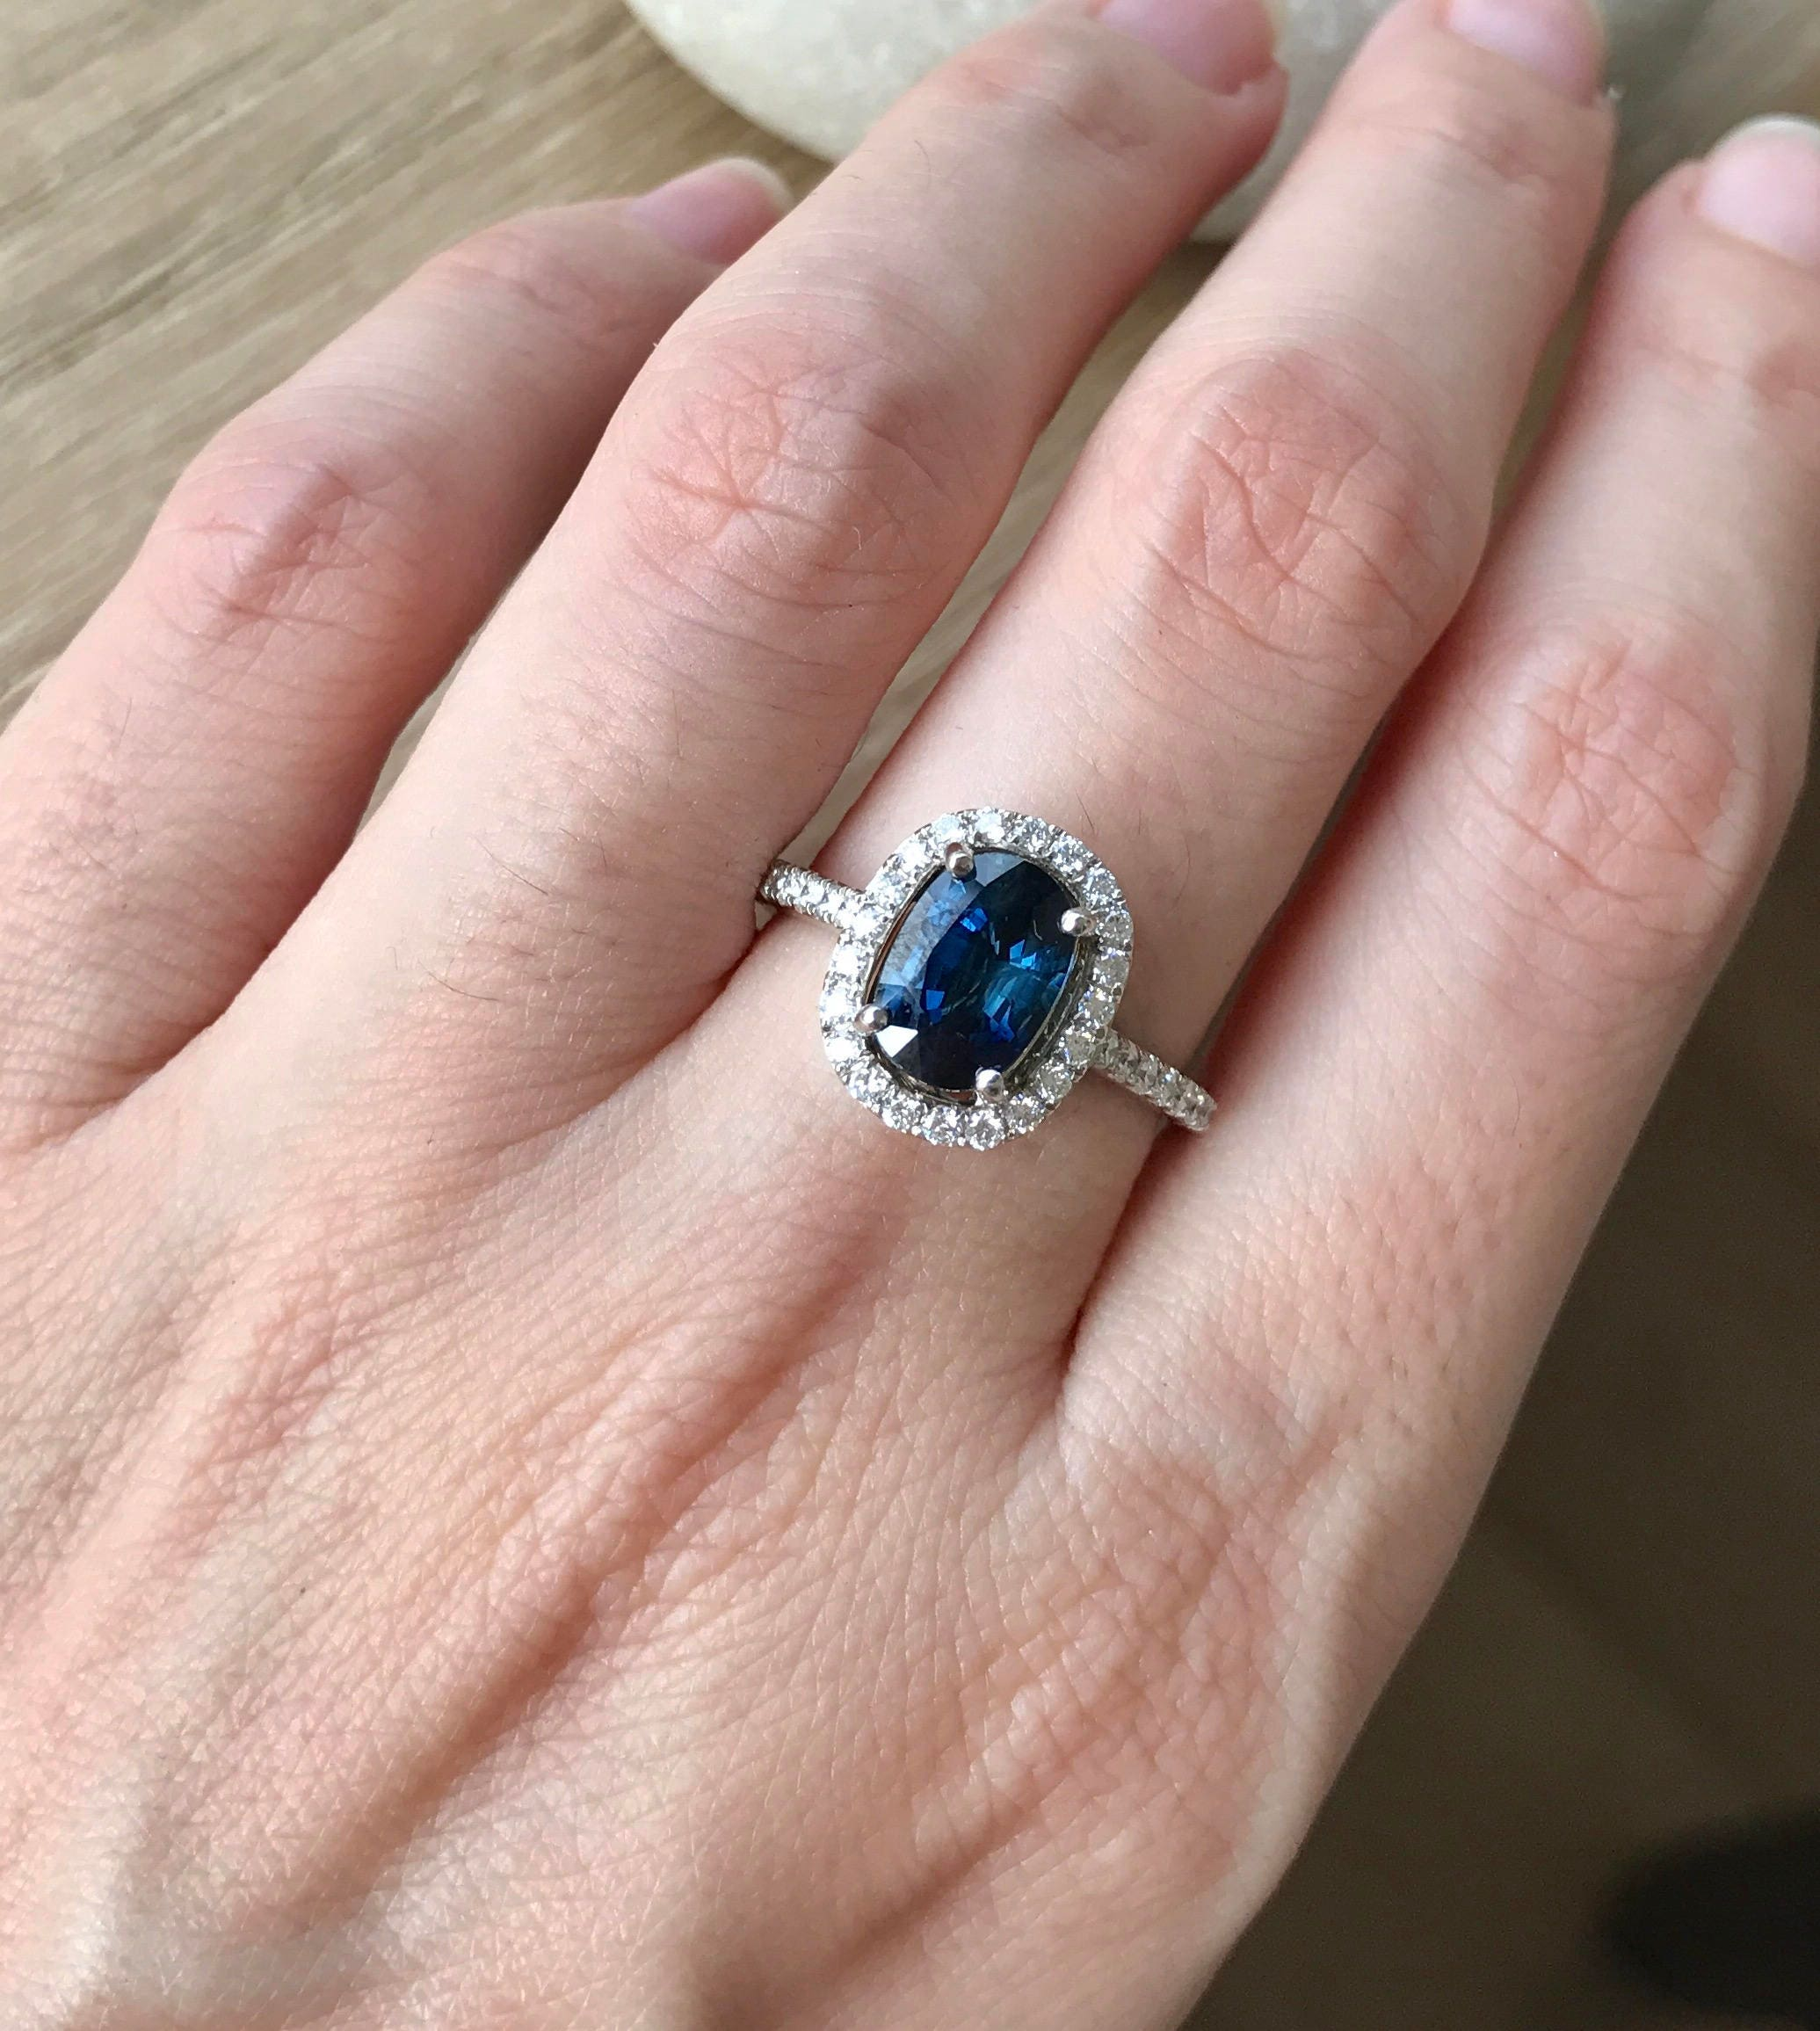 Blue Sapphire Engagement Ring Genuine Oval Blue Sapphire | Etsy